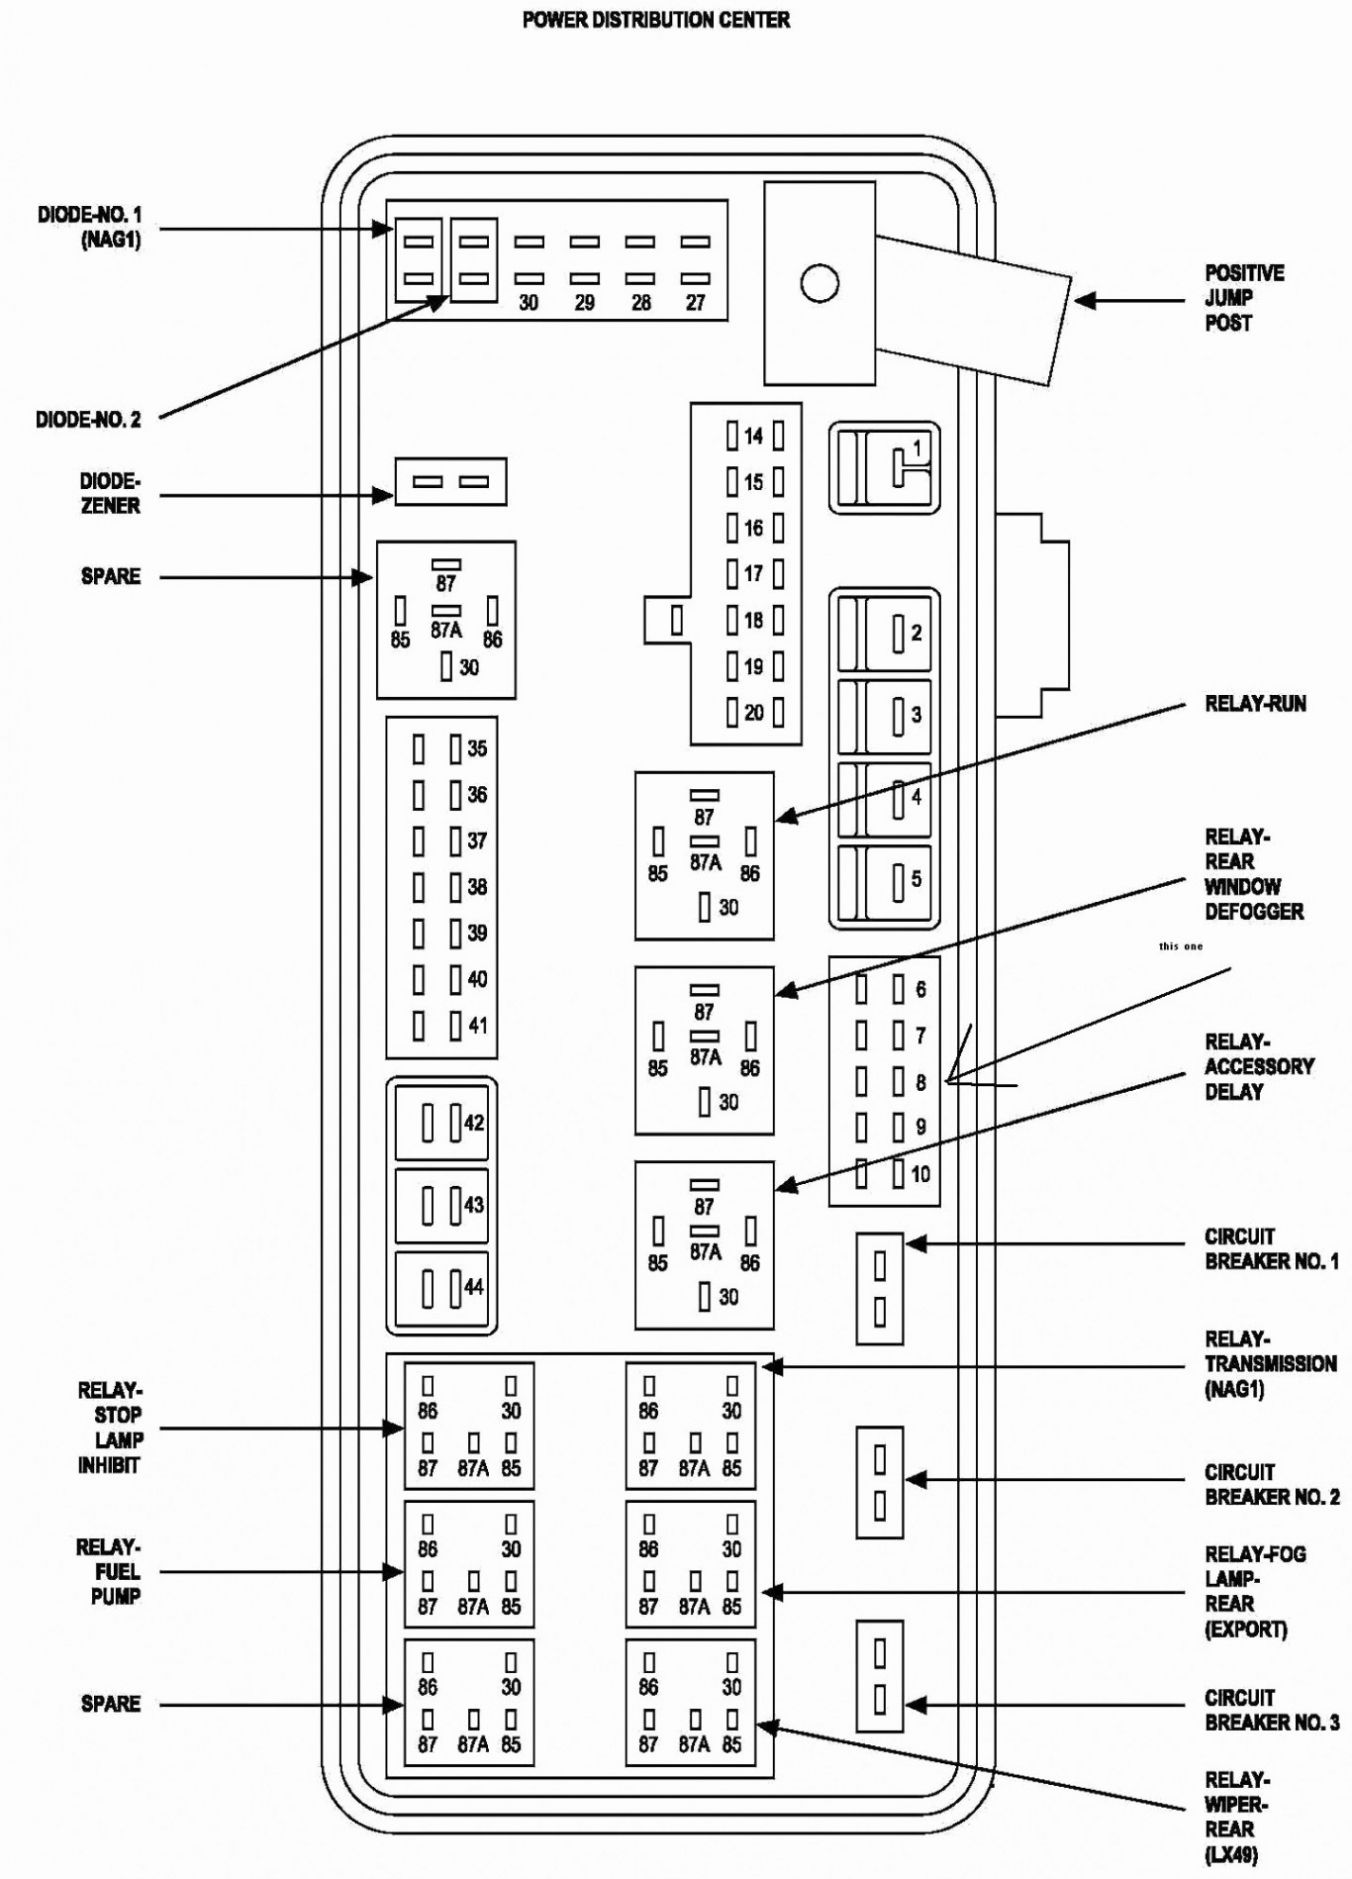 60 New 87a Relay Wiring Diagram